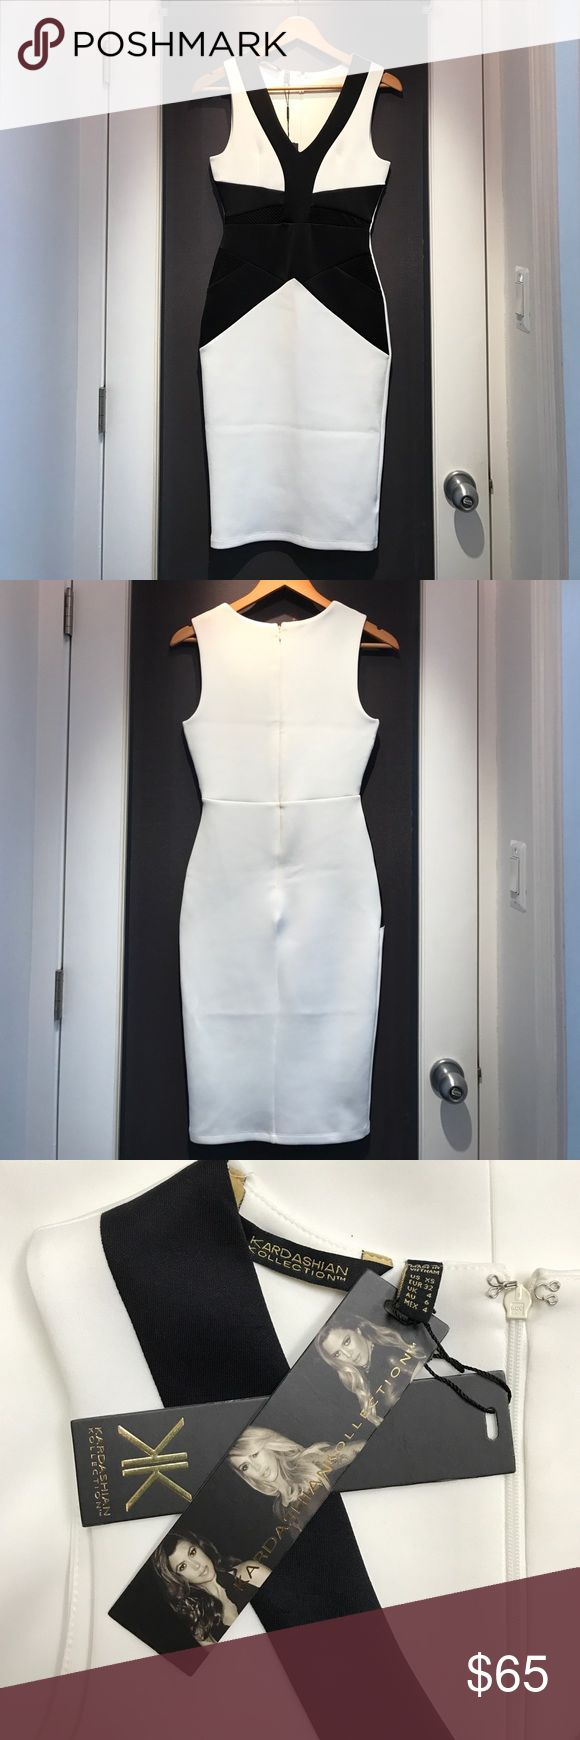 Black and white Kardashian Kollection dress Stunning black and white size XS Kardashian Kollection dress. Never worn! Kardashian Kollection Dresses Midi